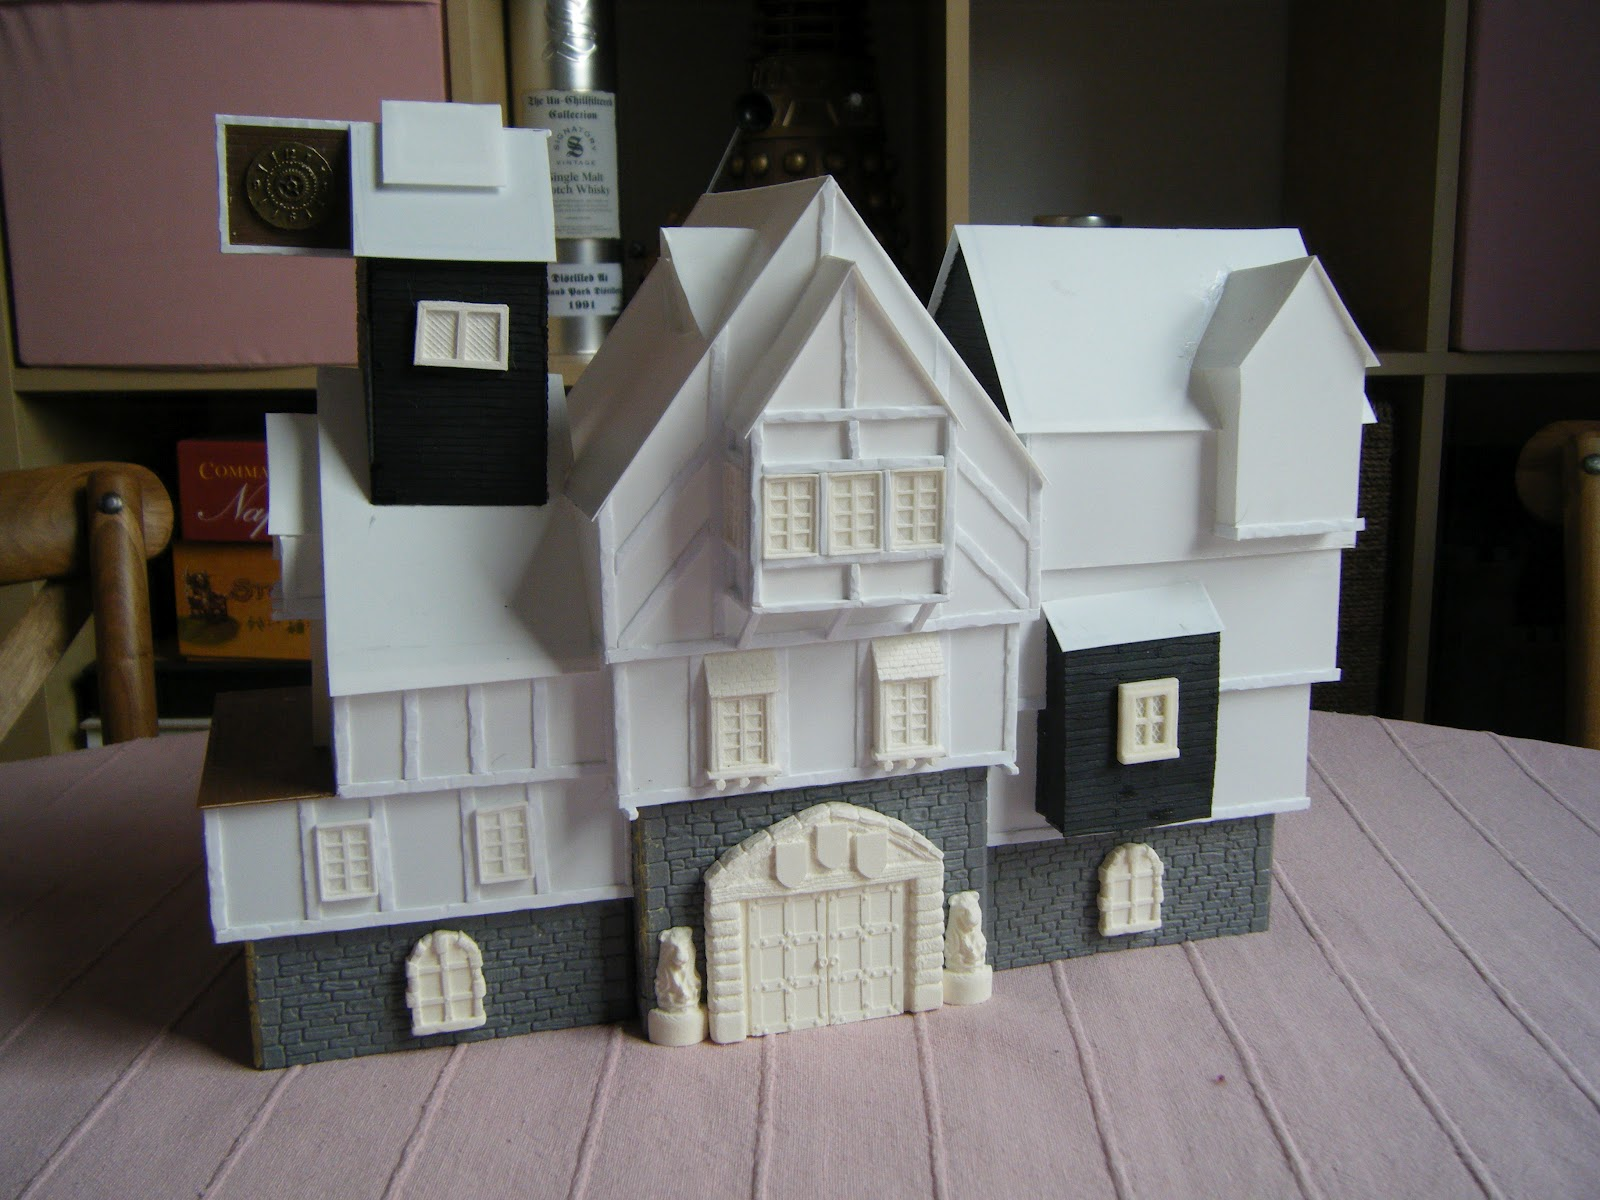 house - Excise House 019